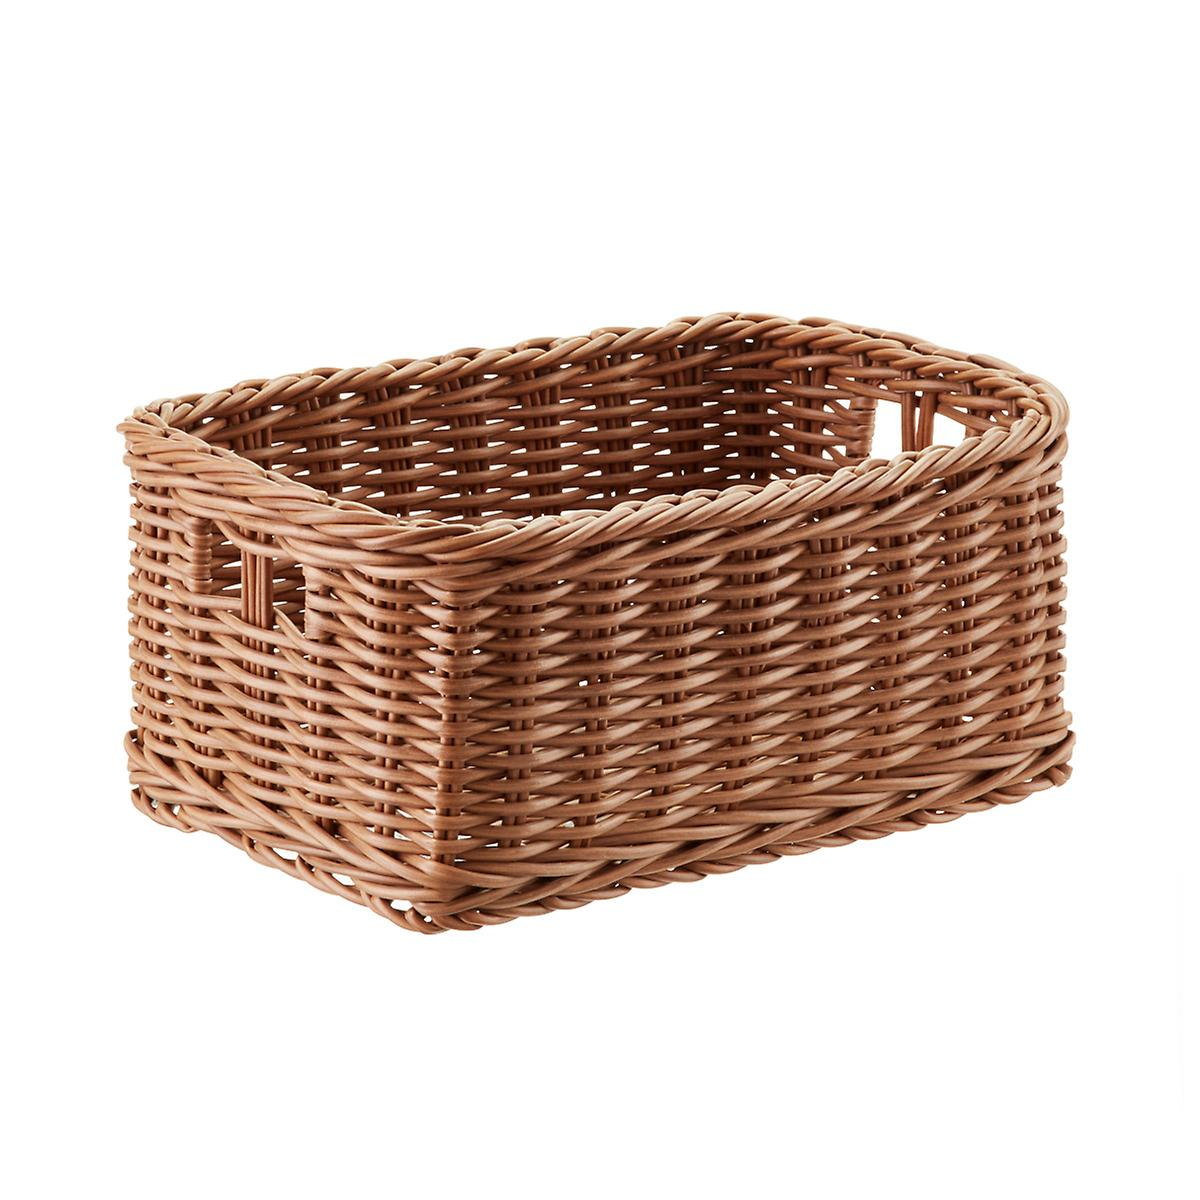 Plastic Wicker Storage Bin with Handles | The Container Store